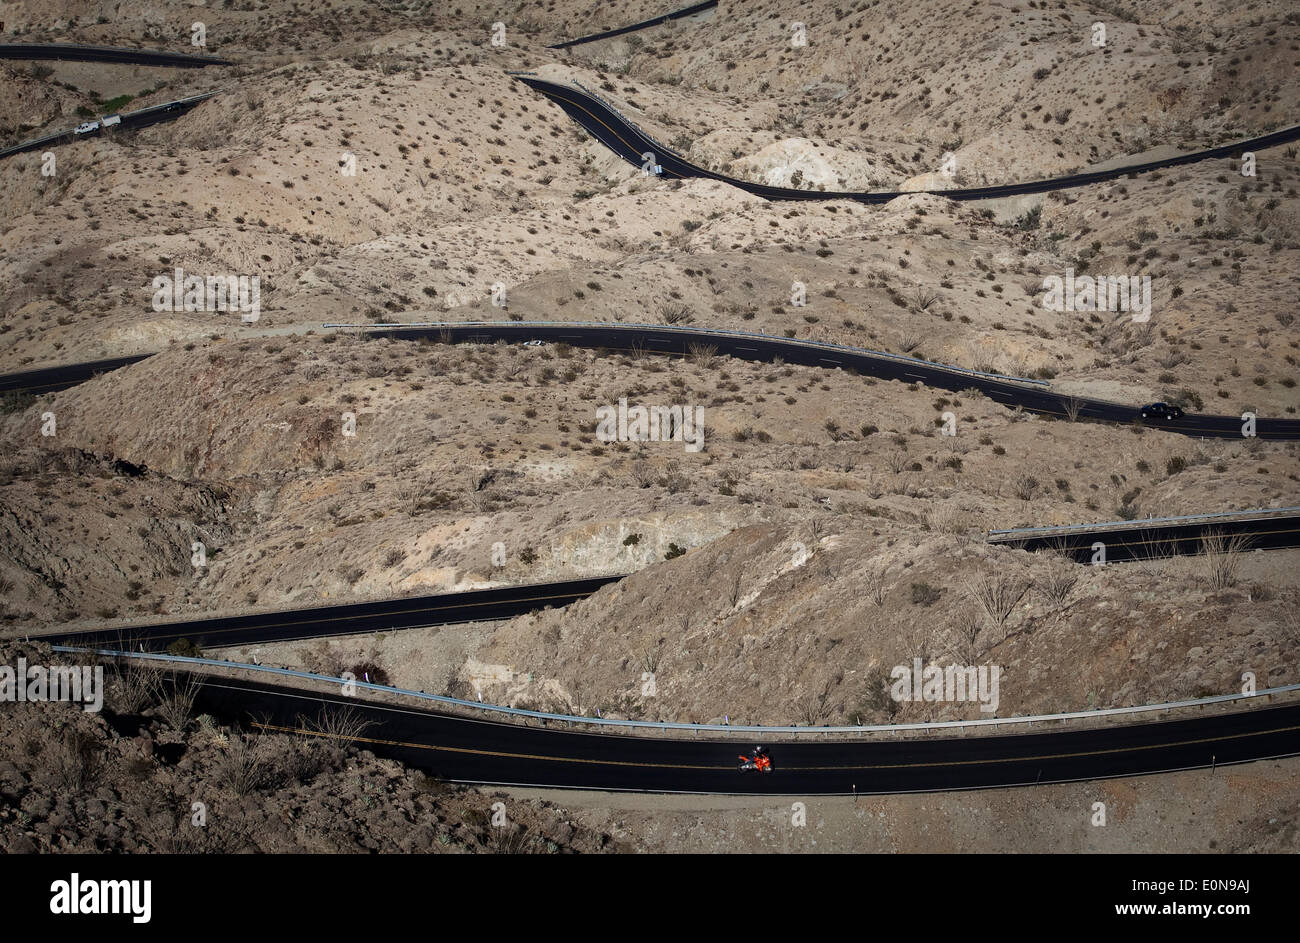 Palm Desert, California, USA. 11th Dec, 2013. A lone motorcycle makes its way up a winding stretch of Highway 74 outside of Palm Desert, Calif. Known as the ''Pines to Palms Highway, '' the scenic trek takes drivers from the desert floor up into the San Jacinto Mountains. © John Schreiber/ZUMAPRESS.com/Alamy Live News - Stock Image